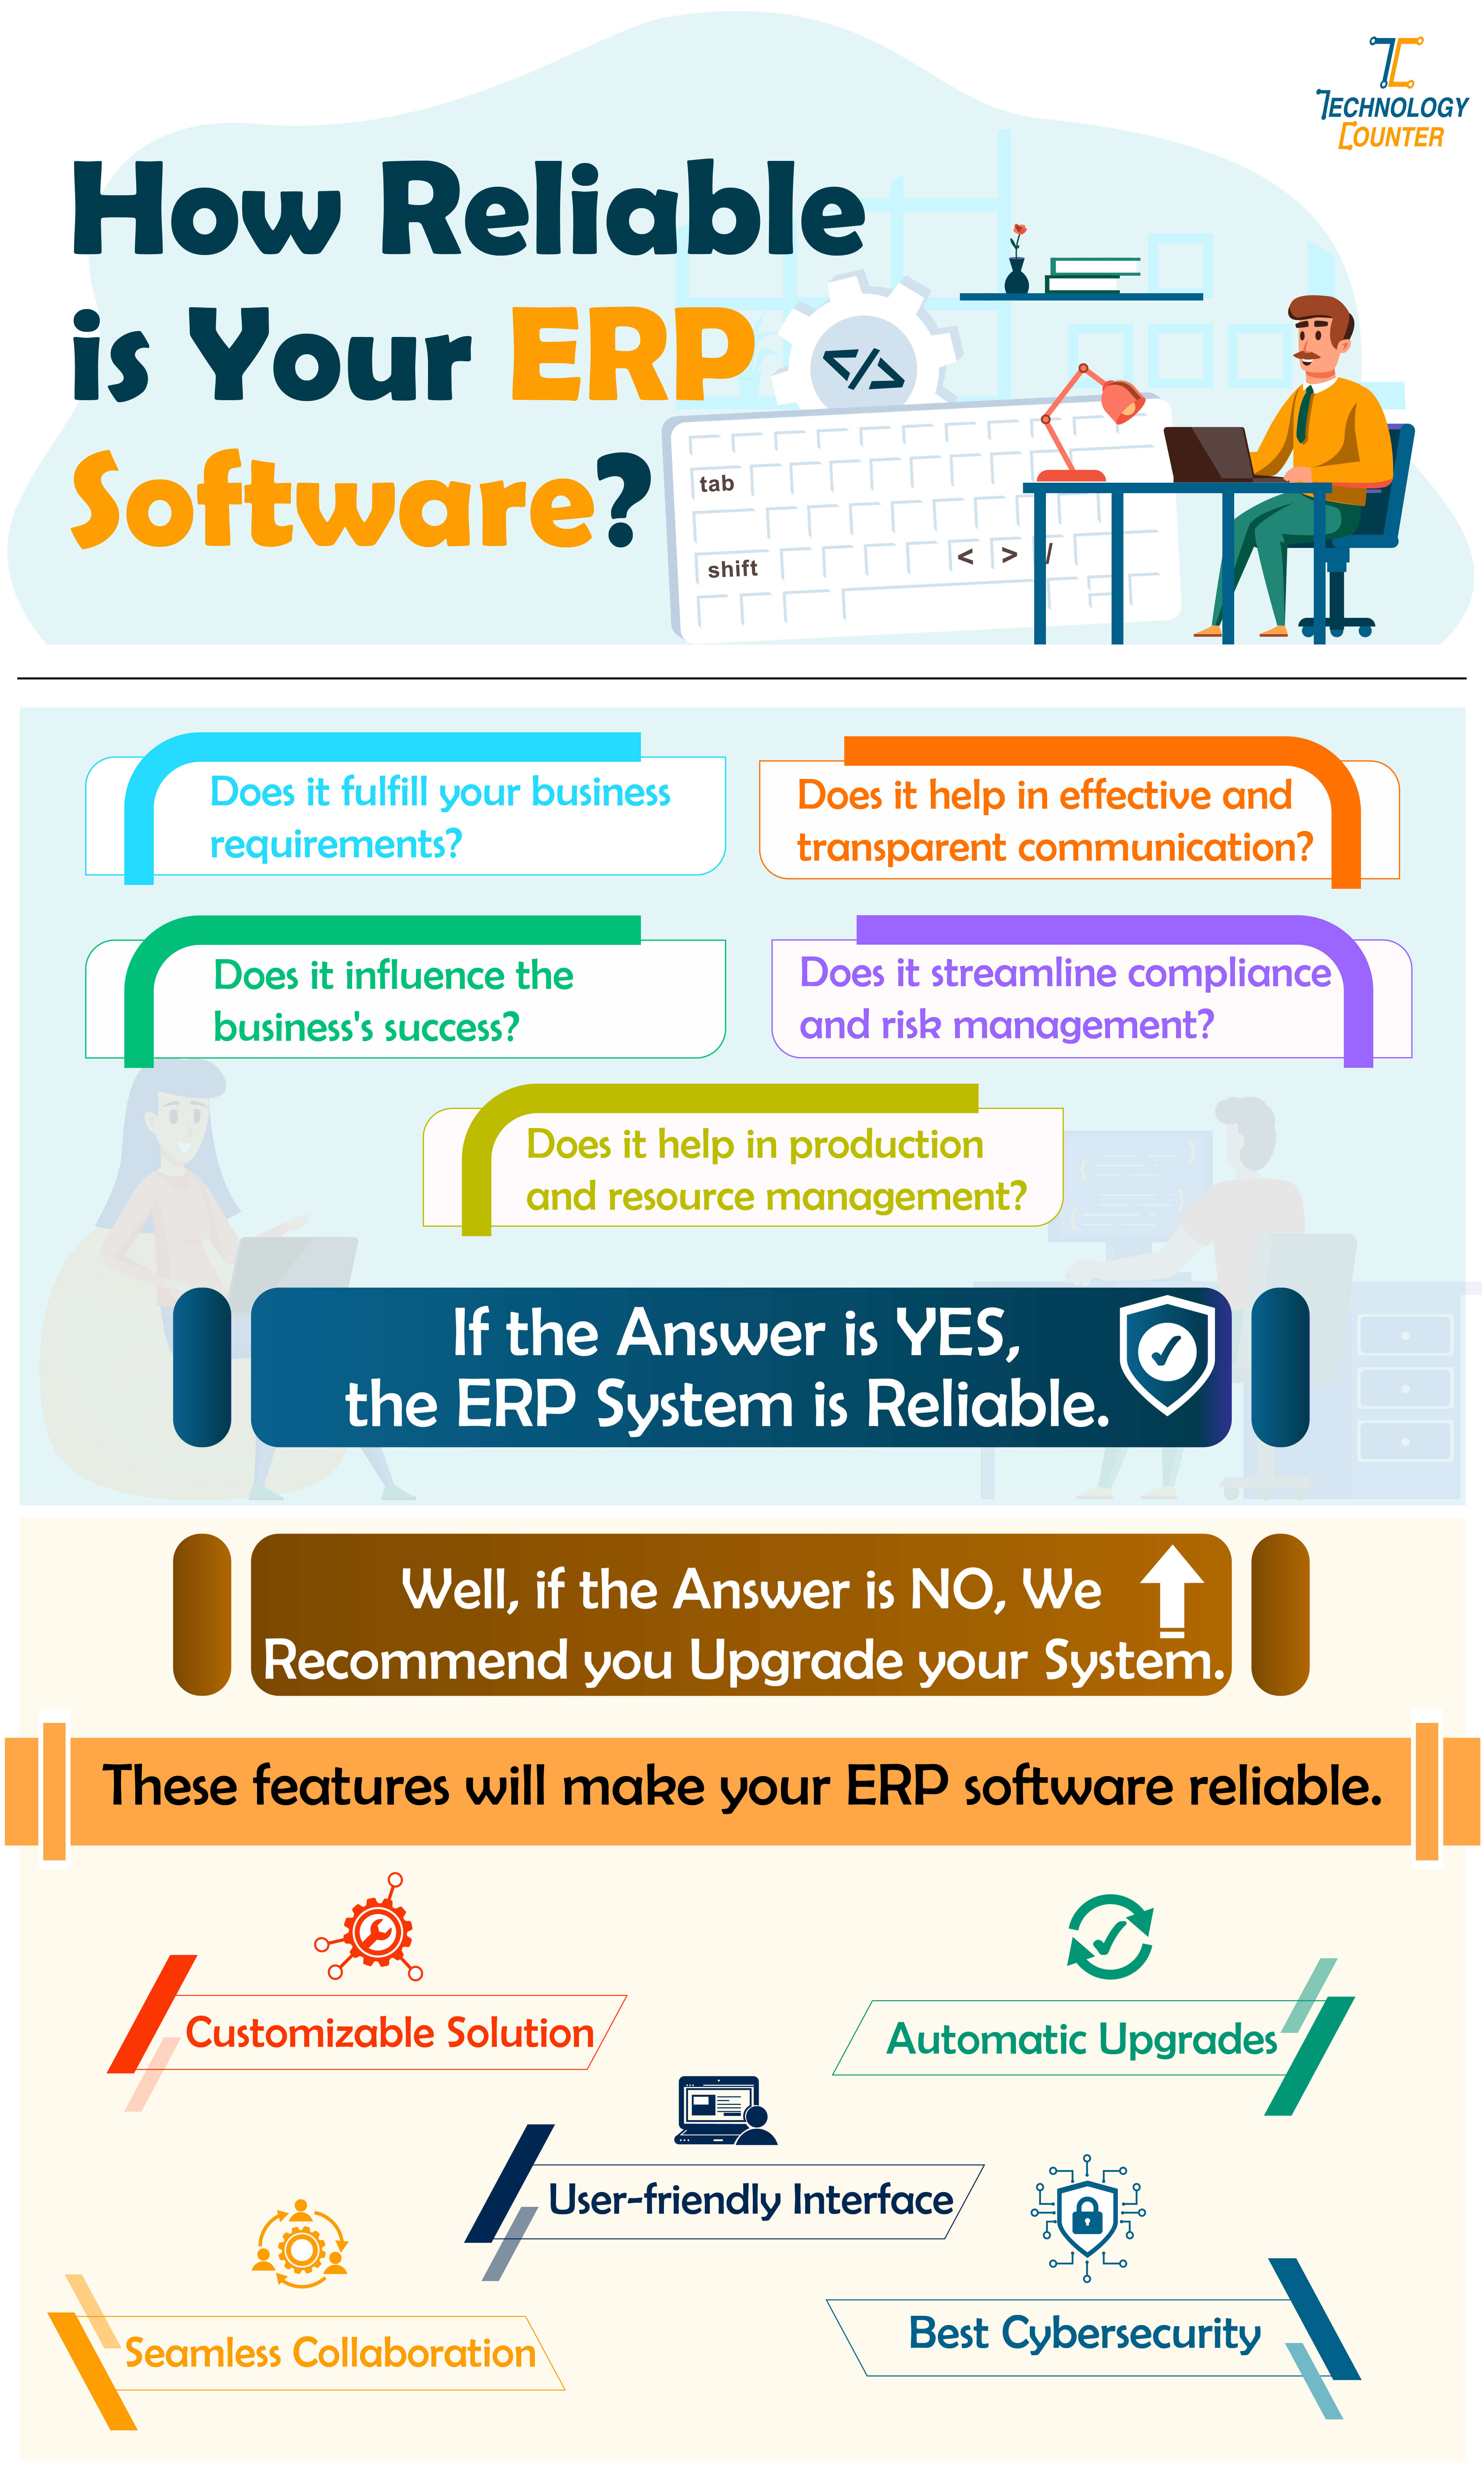 How reliable is your ERP: 5 tips?